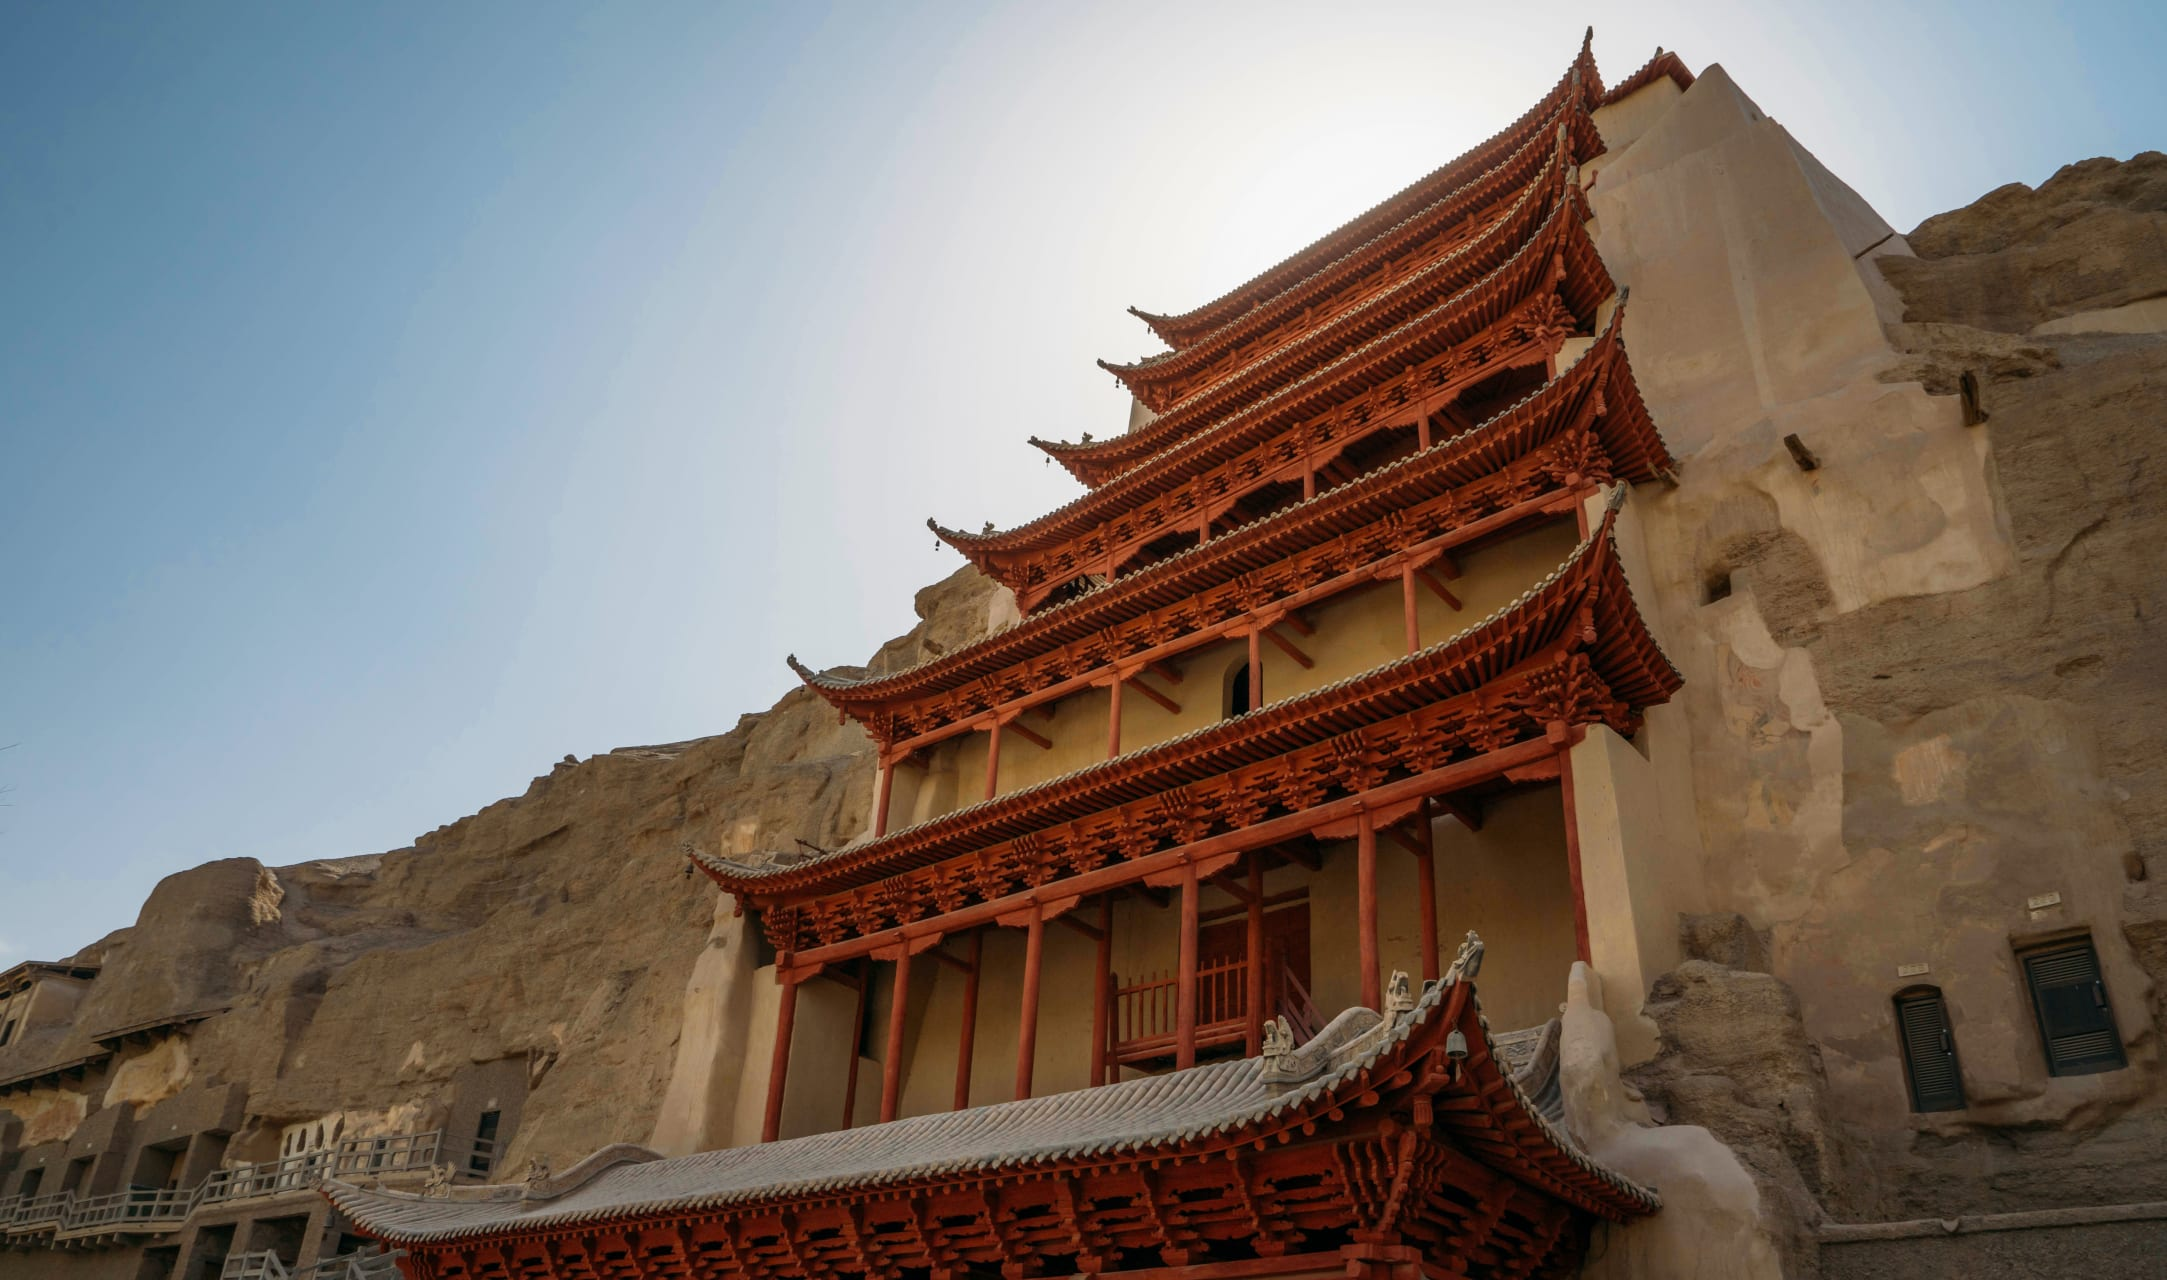 Hexi Corridor (China's Silk Road) - Mogao Caves: 1500-Year-Old Buddhist Grottoes on the Silk Road